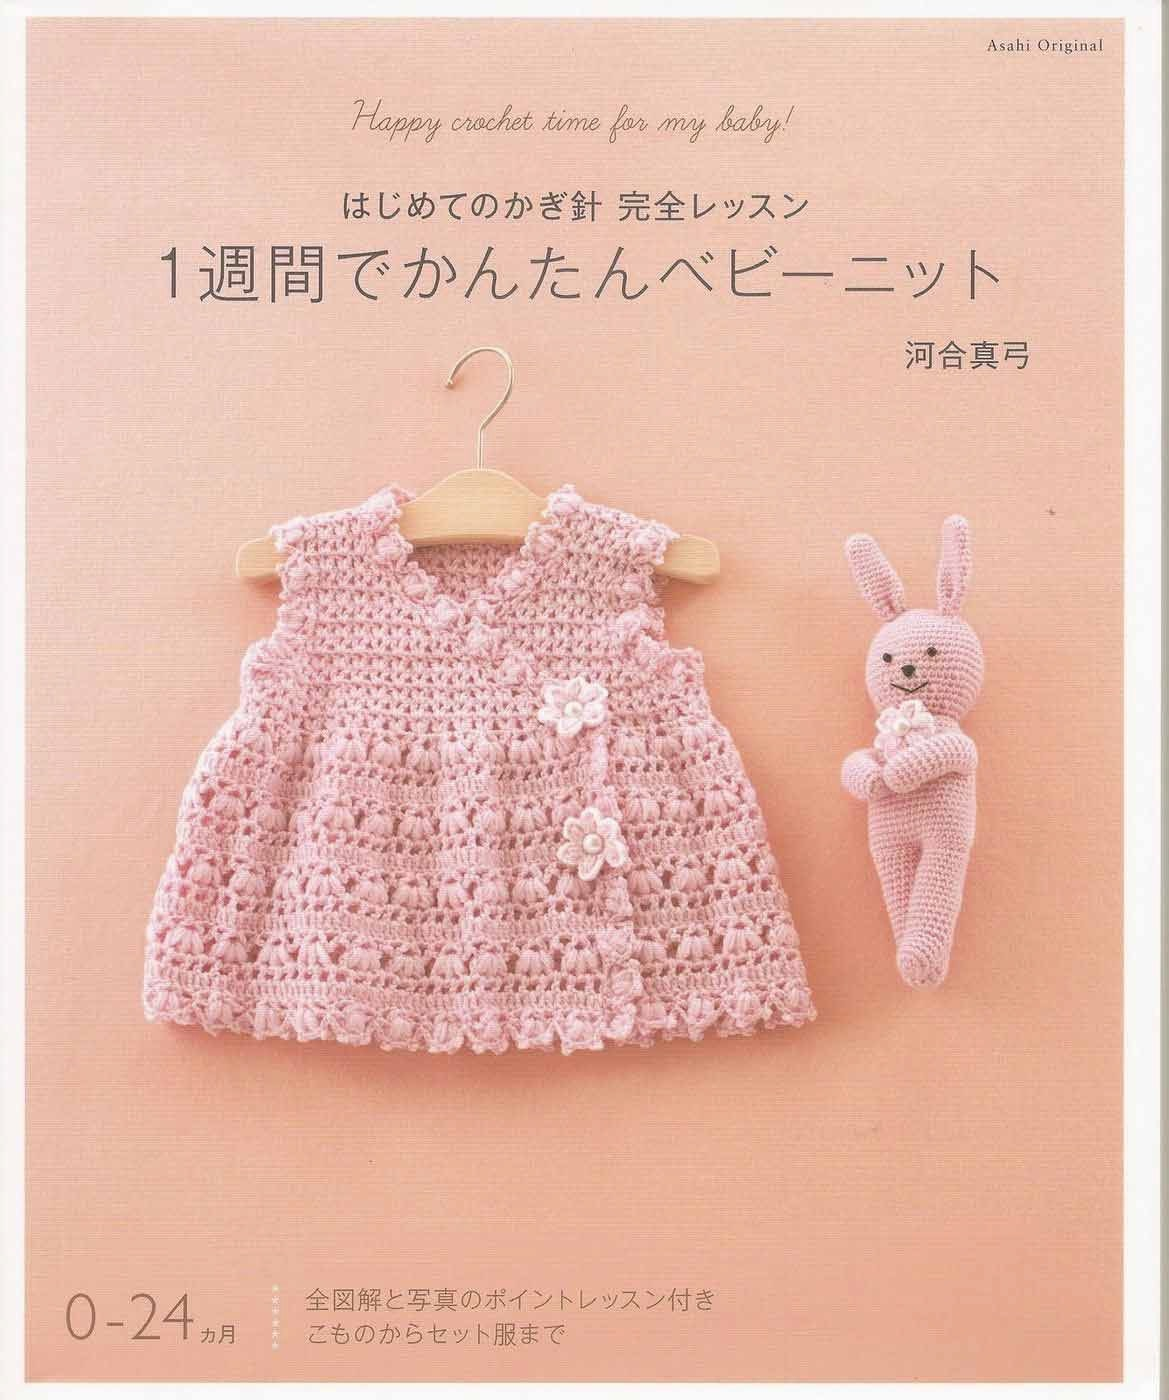 Baby crochet pattern - baby crochet dress - baby crochet toys ...